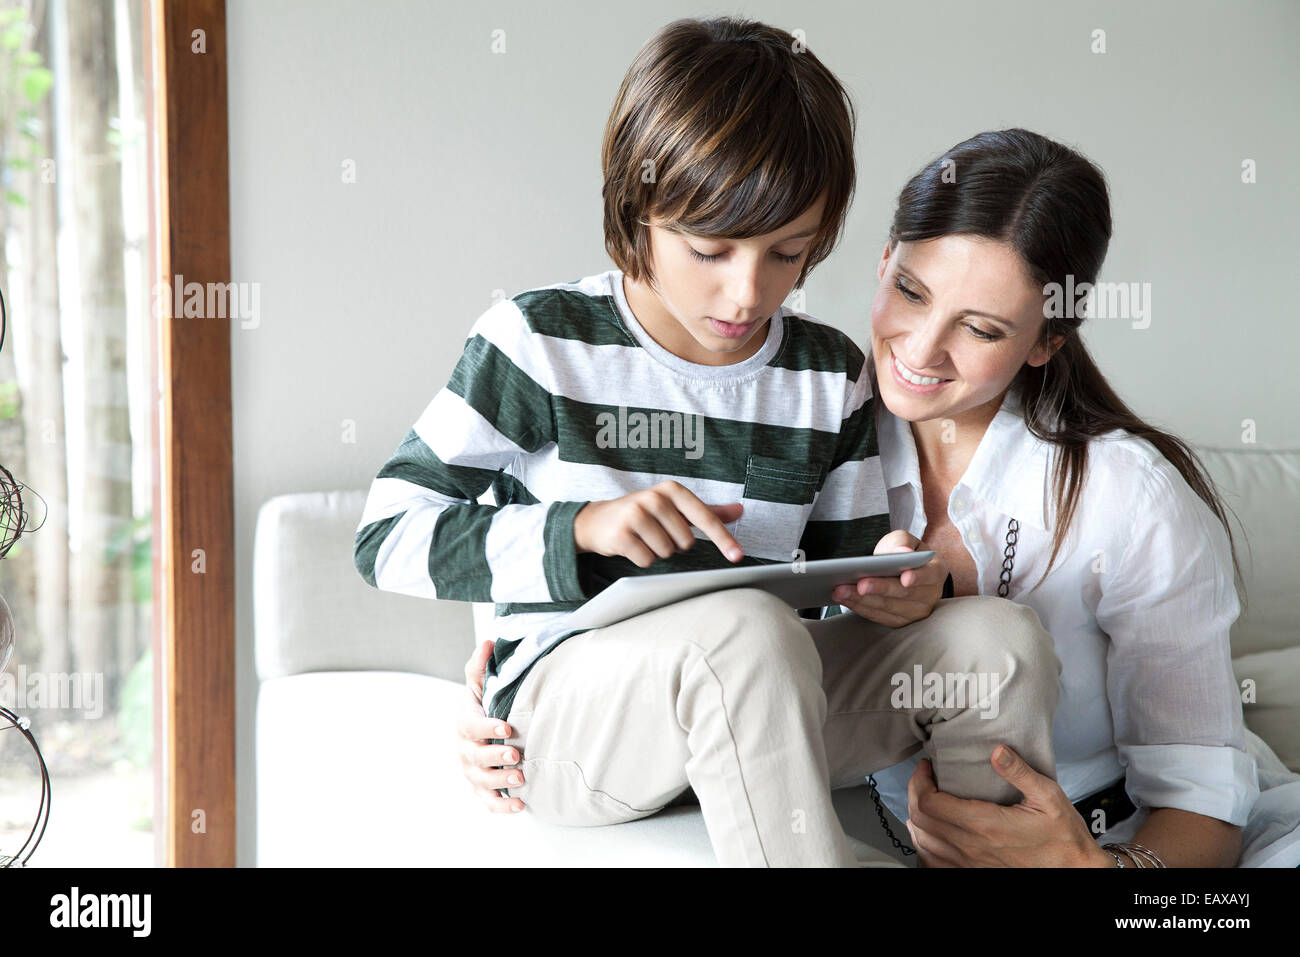 Mother and son using digital tablet together - Stock Image